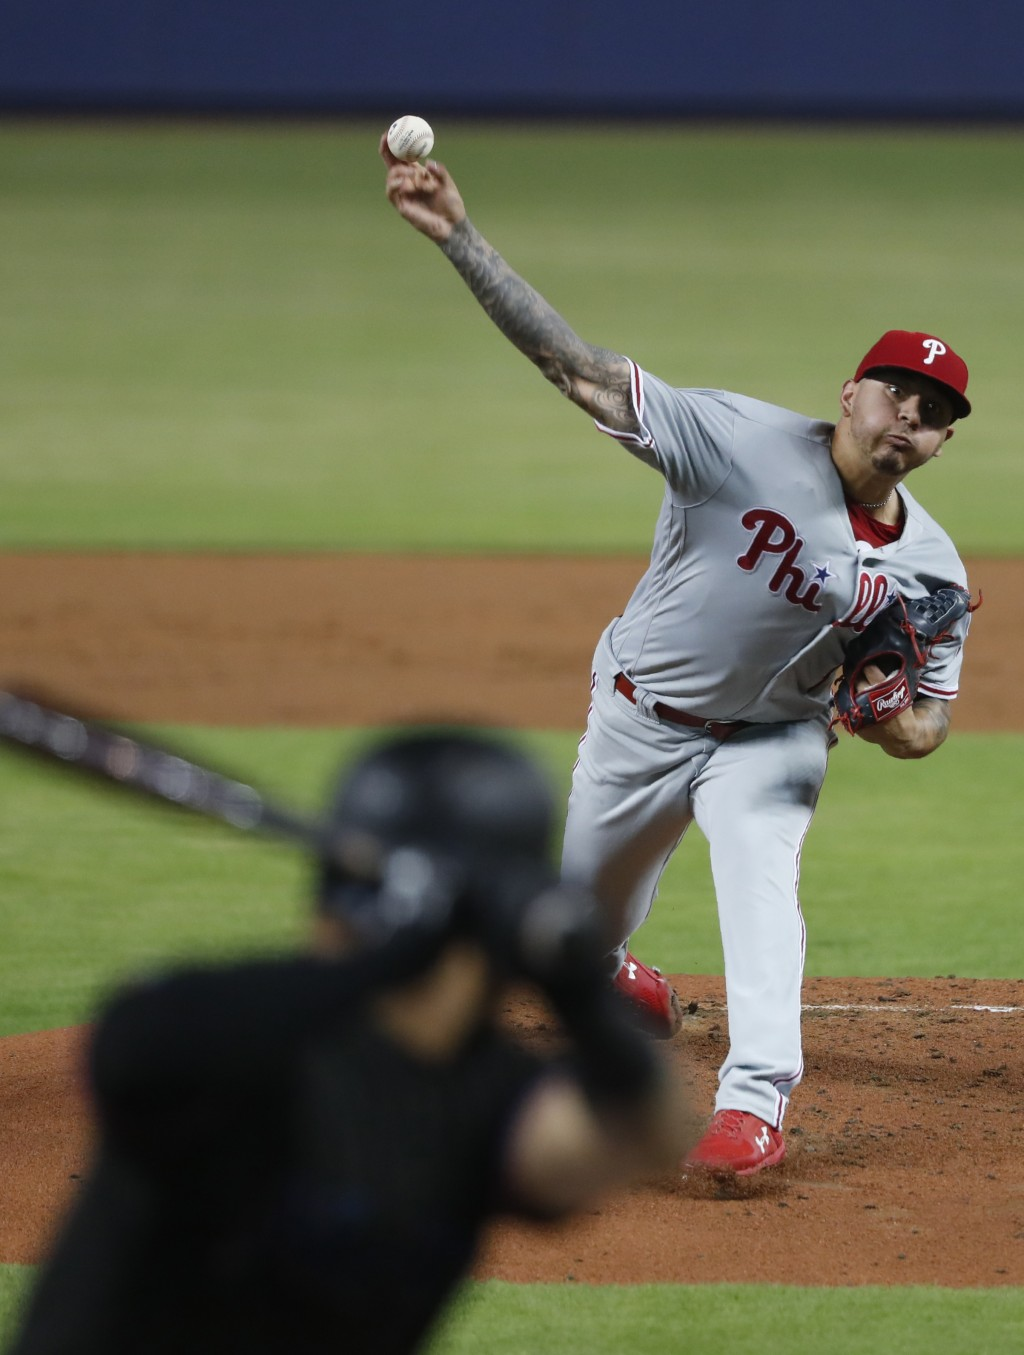 Philadelphia Phillies' Vince Velasquez, top, pitches to Miami Marlins' Harold Ramirez during the first inning of a baseball game, Friday, June 28, 201...